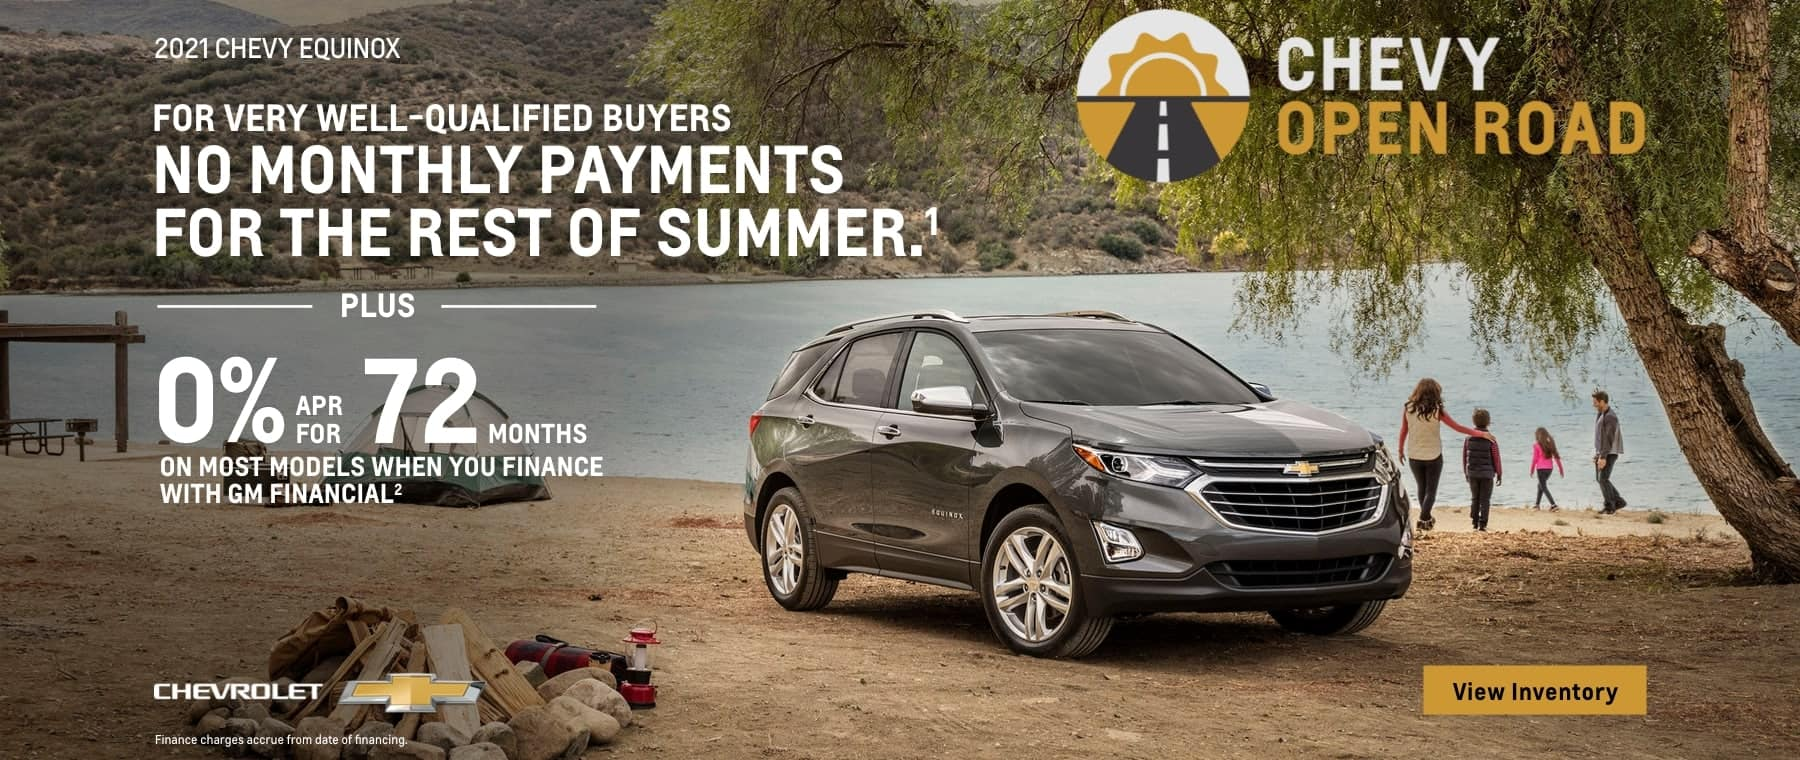 2021 Chevy Equinox. No monthly payments for the rest of summer for vey well-qualified buyers. Plus, 0% APR for 72 months on most models when you finance with GM Financial.